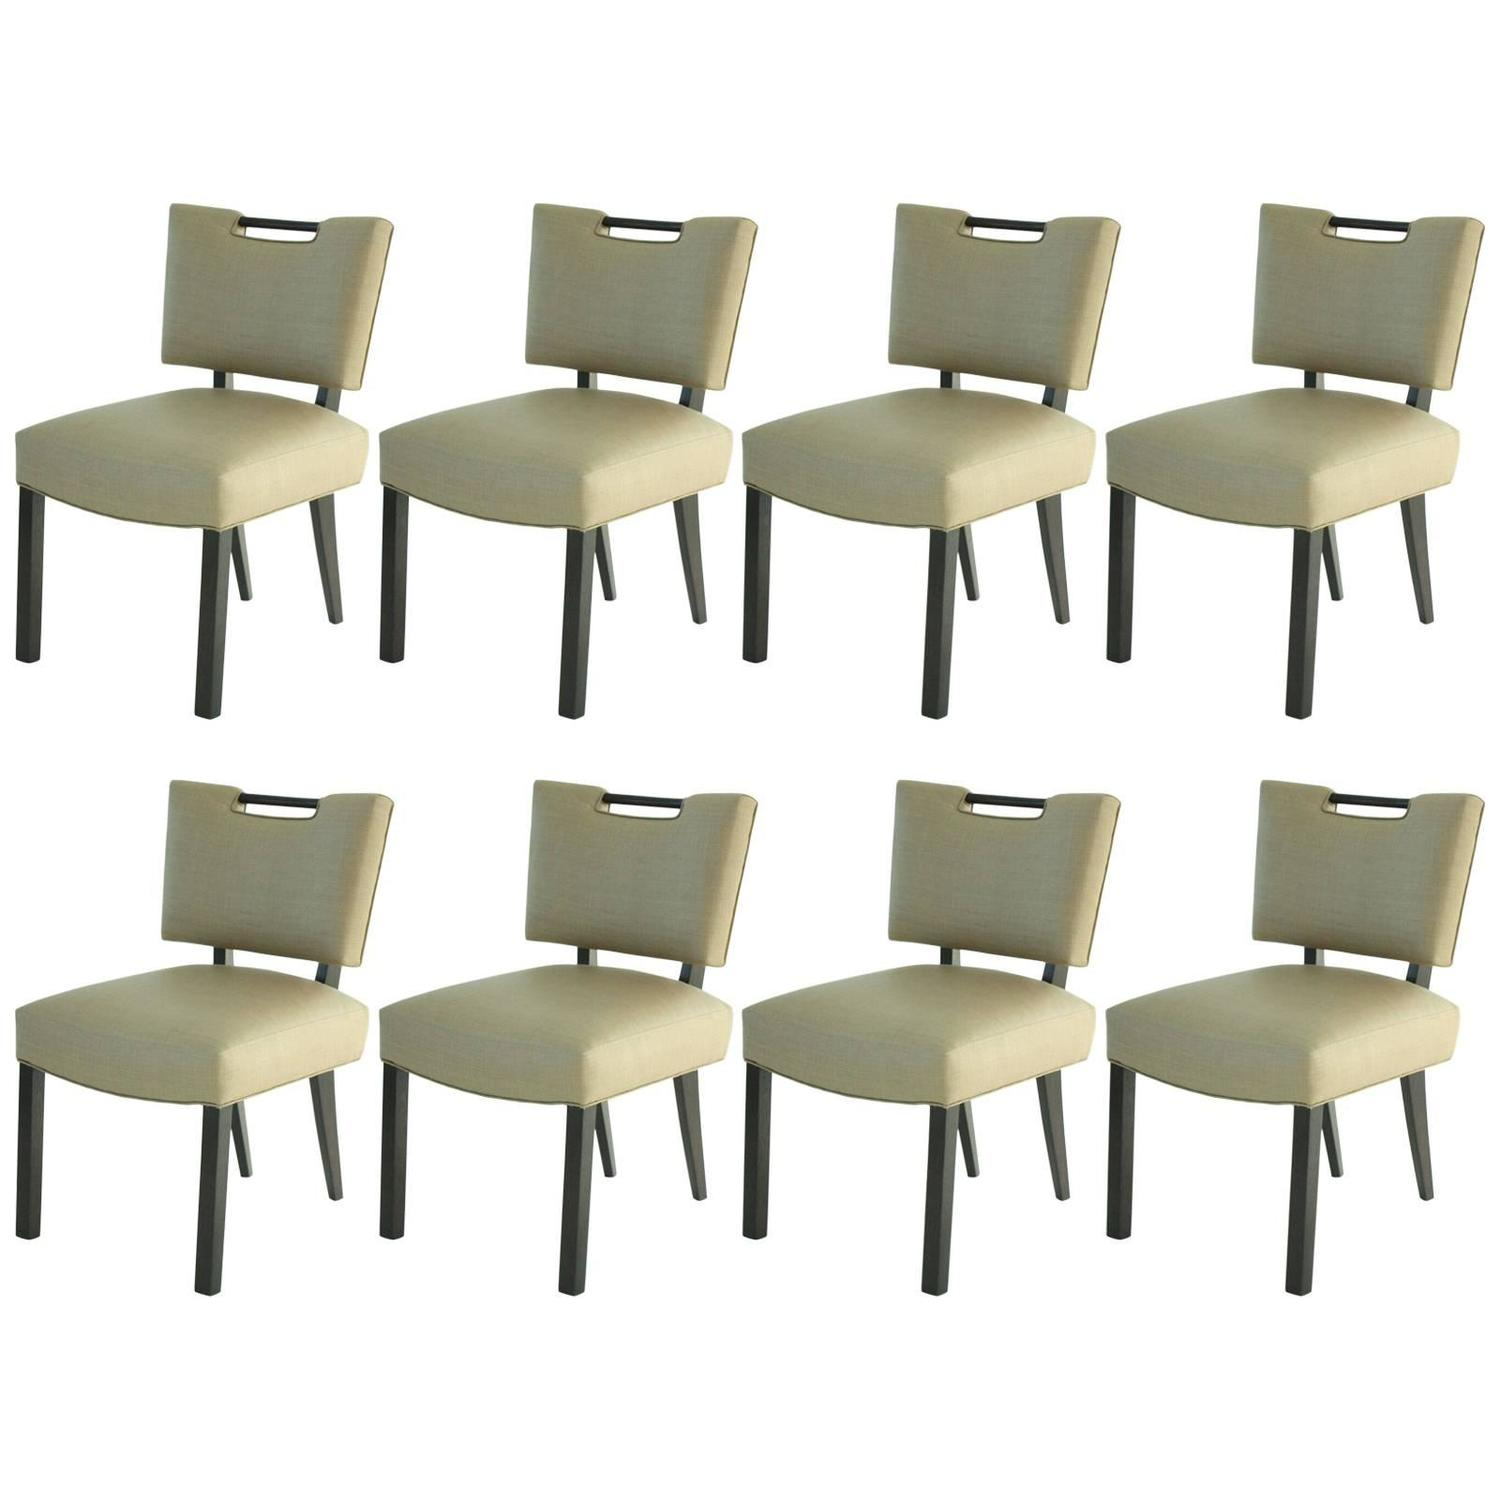 Modern Paul Laszlo Dining Chairs Set Of 8 For Sale At 1stdibs